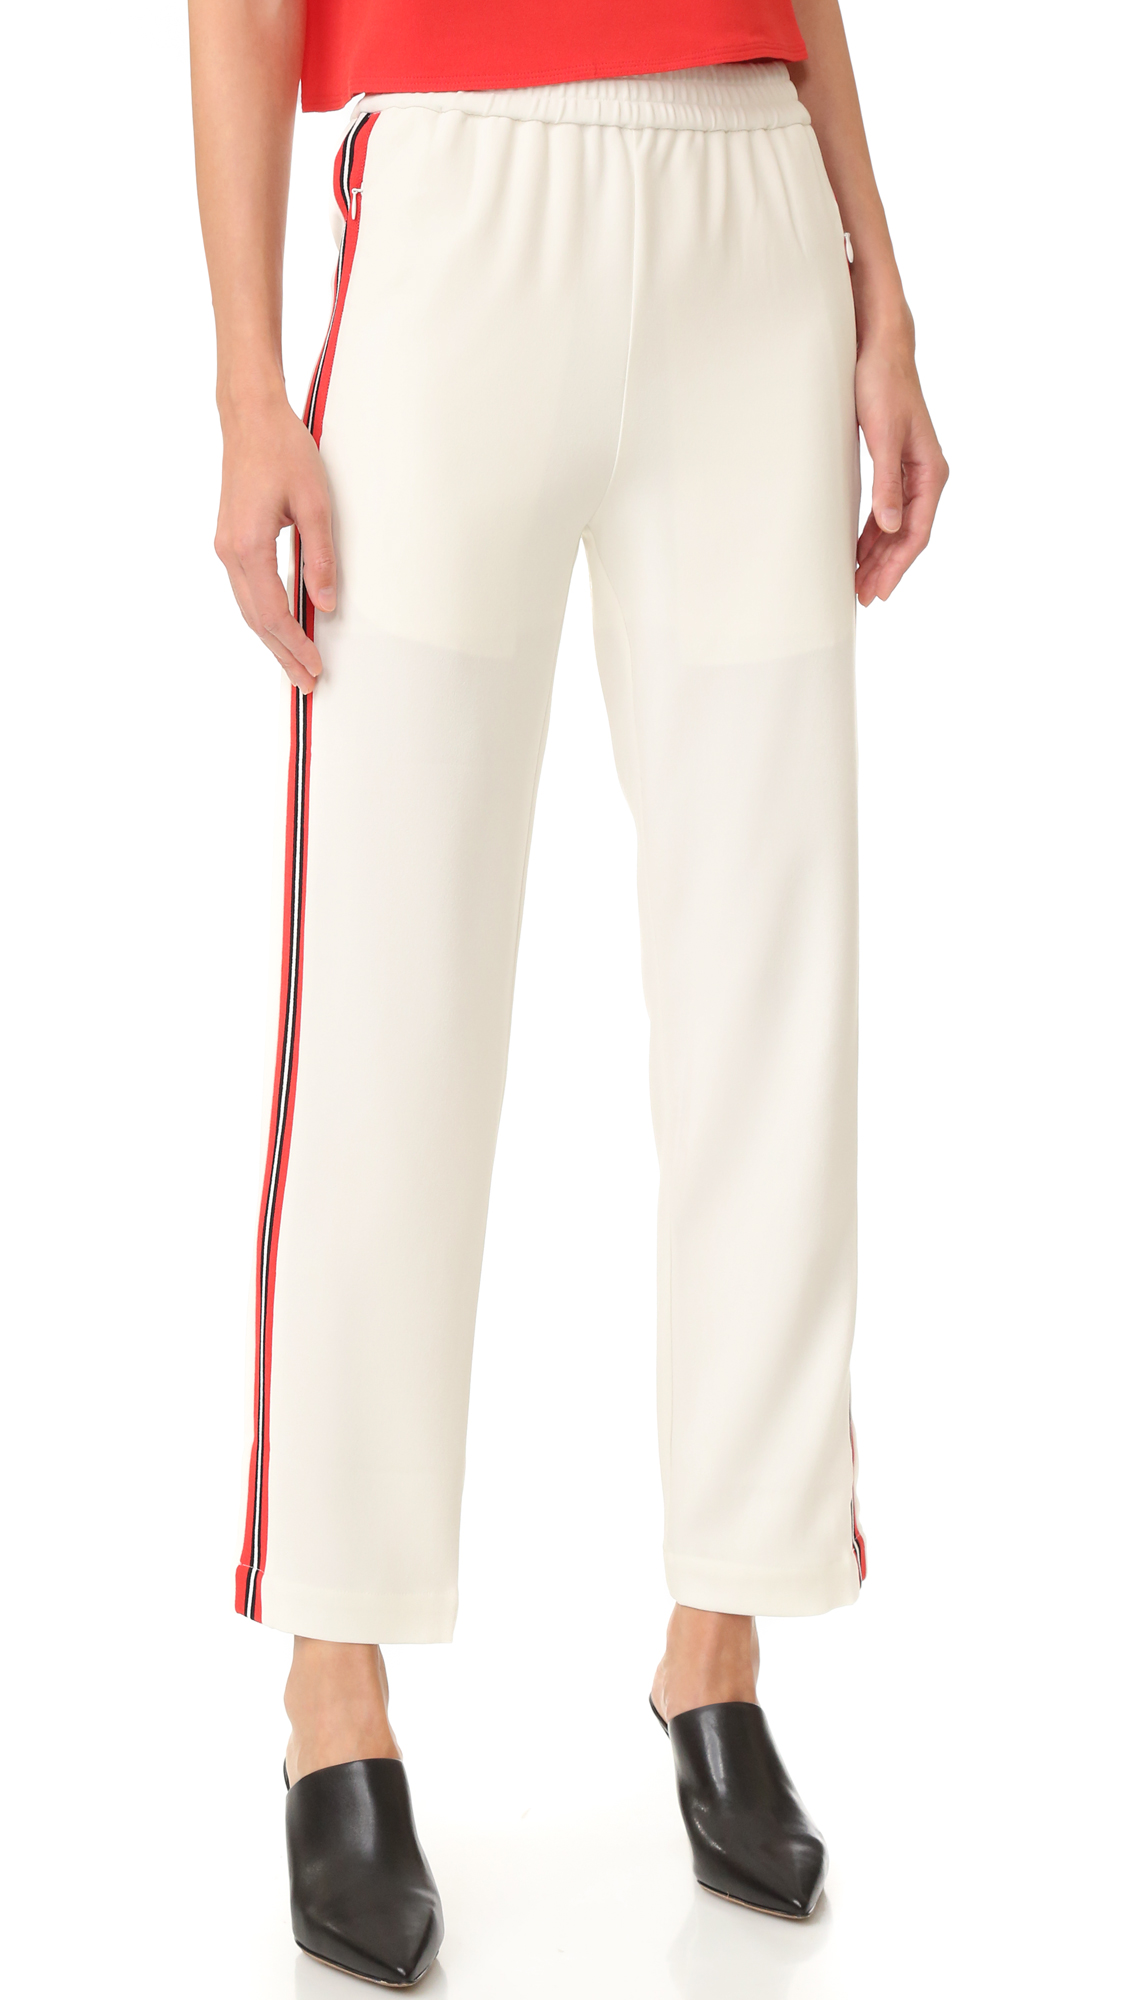 Bright racing stripes streak the sides of these luxe crepe Edition10 joggers. Smocked elastic waist. Hidden zip pockets at hips. Lined. Fabric: Crepe. Shell: 69.8% triacetate/30.2% polyester. Trim: 100% polyester. Wash cold. Imported, China. Measurements Rise: 11.5in / 29cm